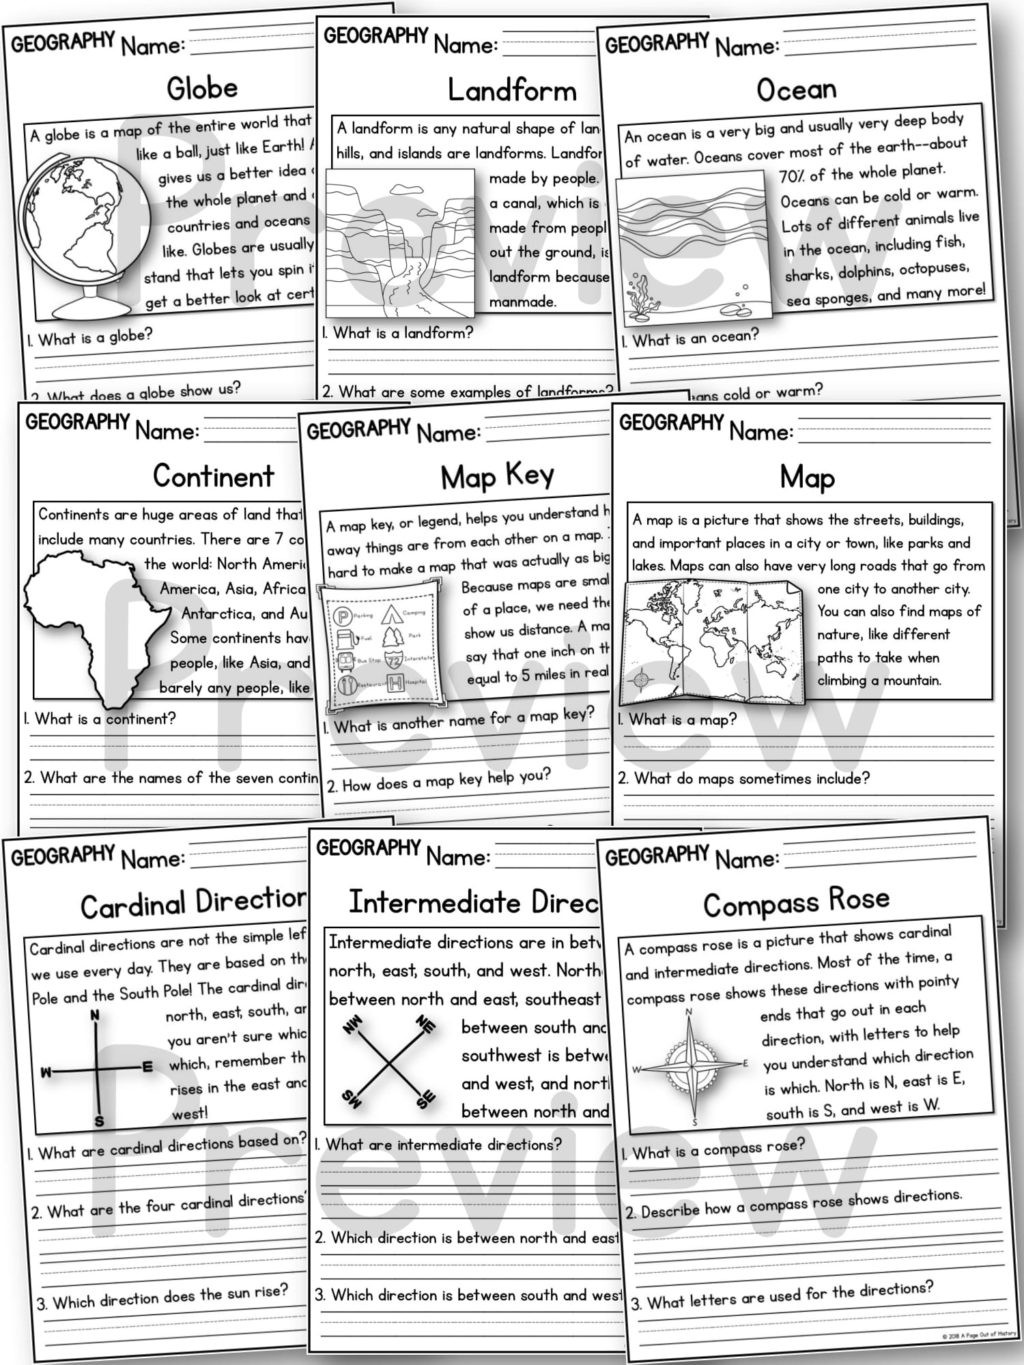 geography reading prehension passages preview 6th standard cbs math worksheets 1st grade printable mixed future tenses exercises pdf student for factoring problems with answers handy 1024x1365